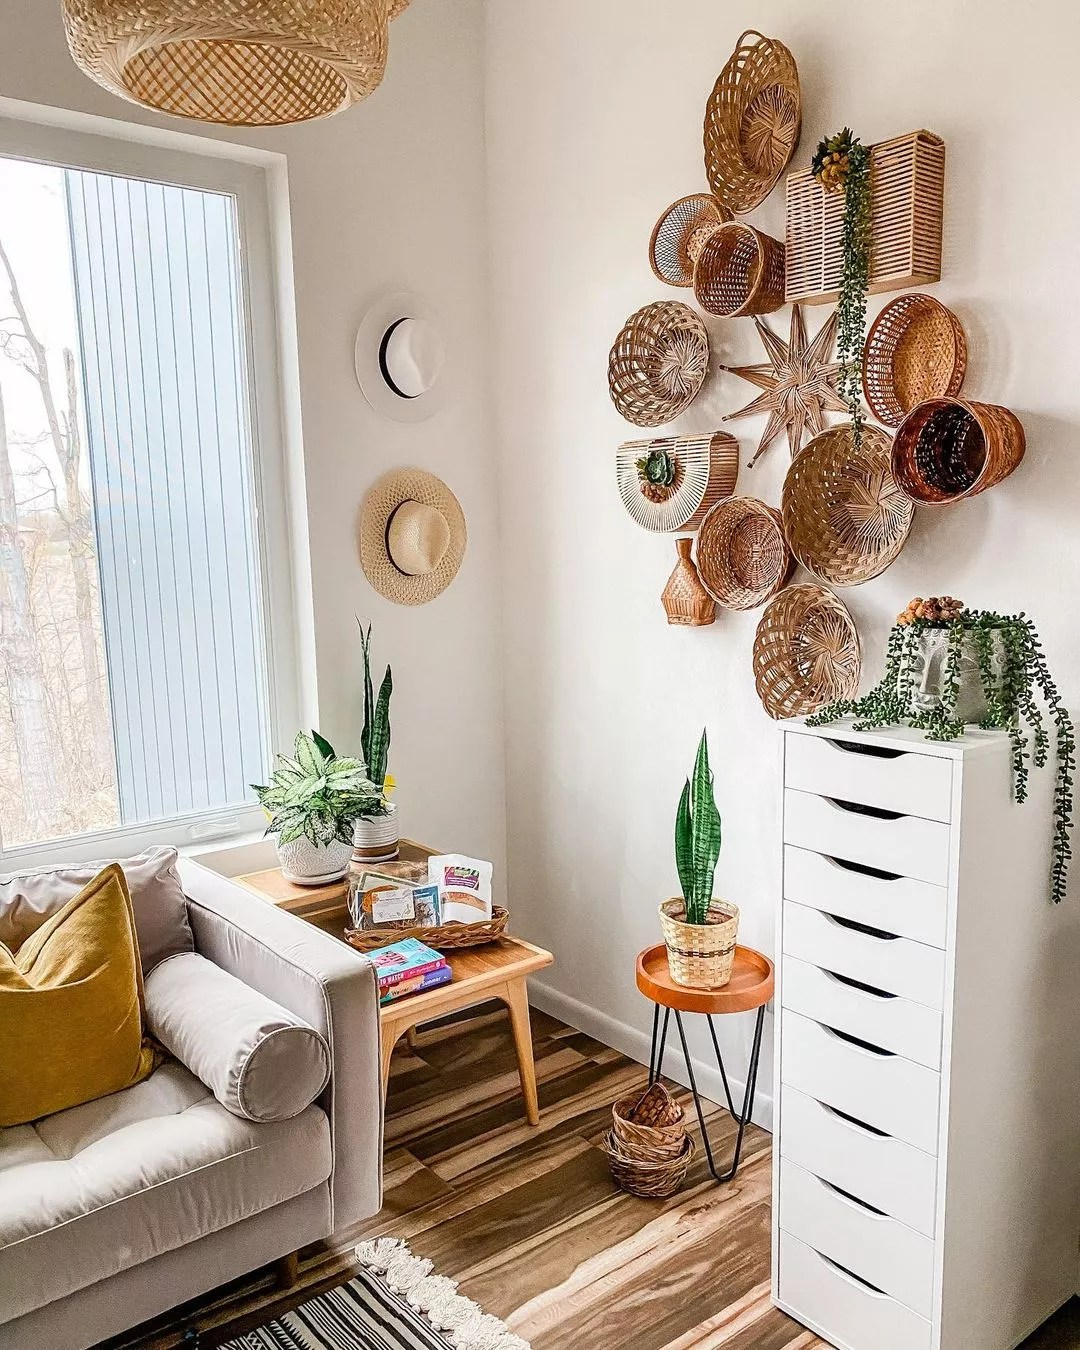 Open room with bamboo and rattan baskets of varying sizes hung on the wall. Photo by Instagram user @angbruening.